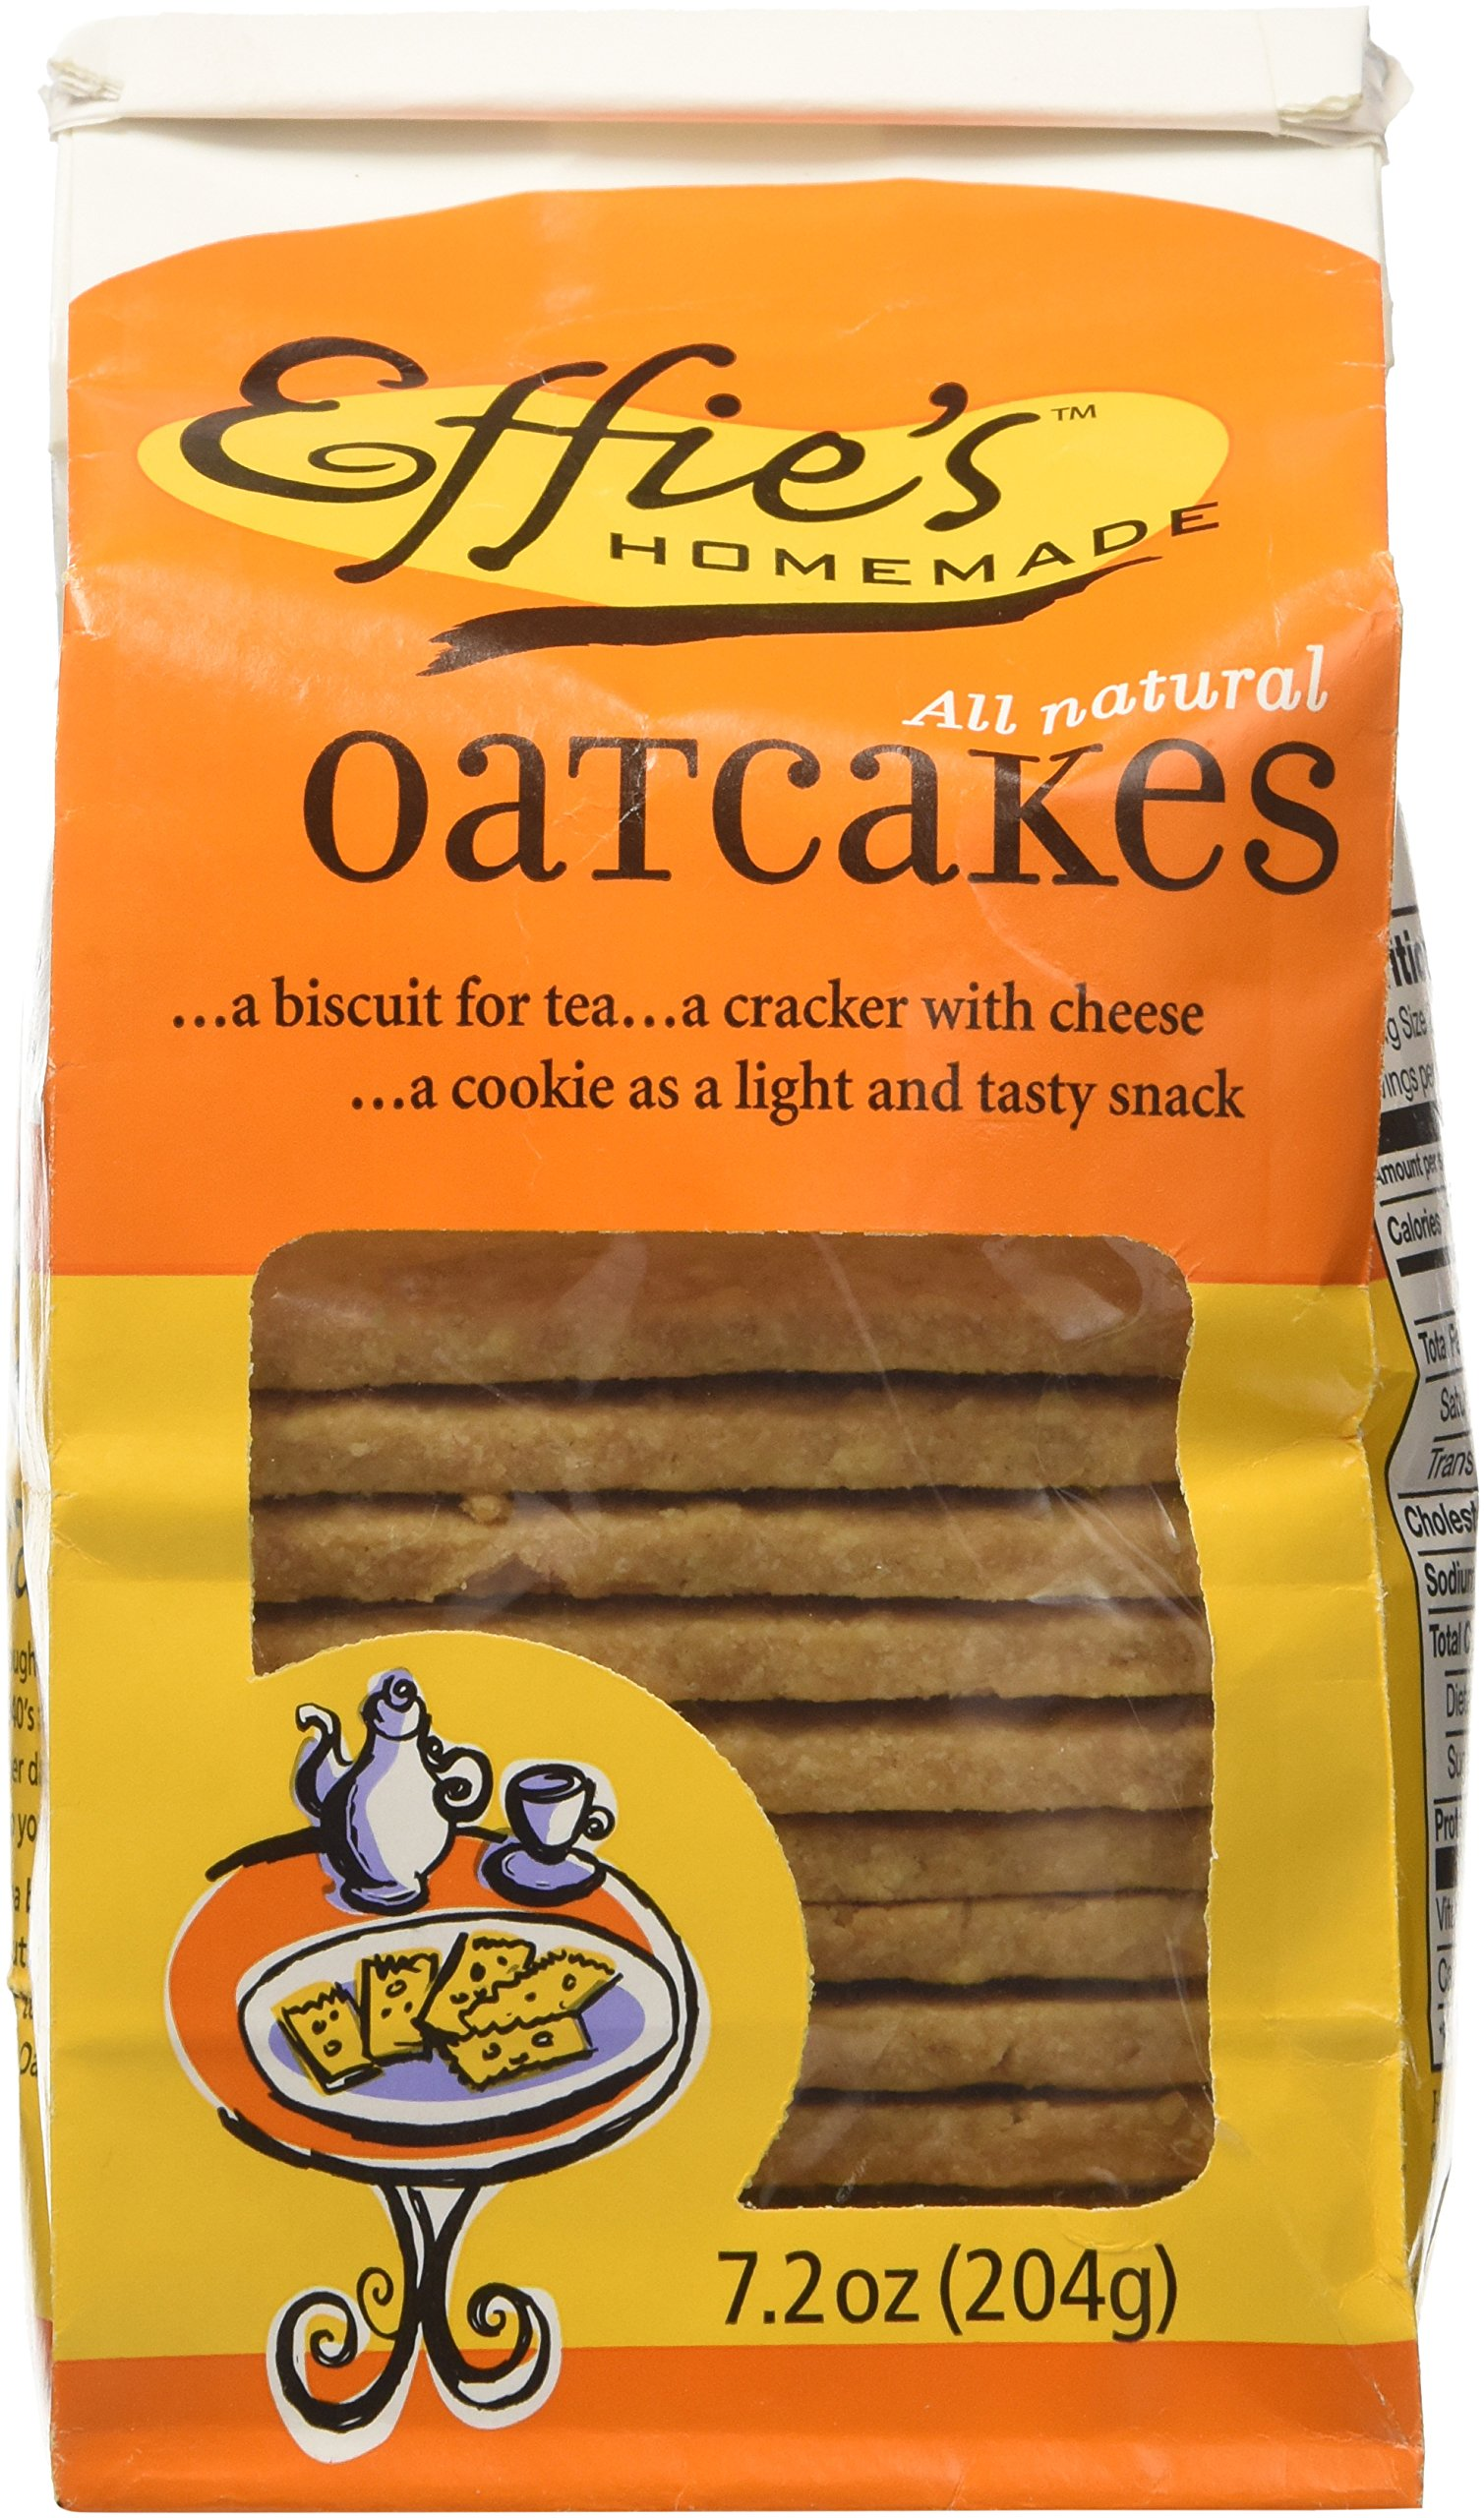 Oatcakes - Effie's Homemade (3 pack), 7.2 ounce by Effie's Homemade Corncakes